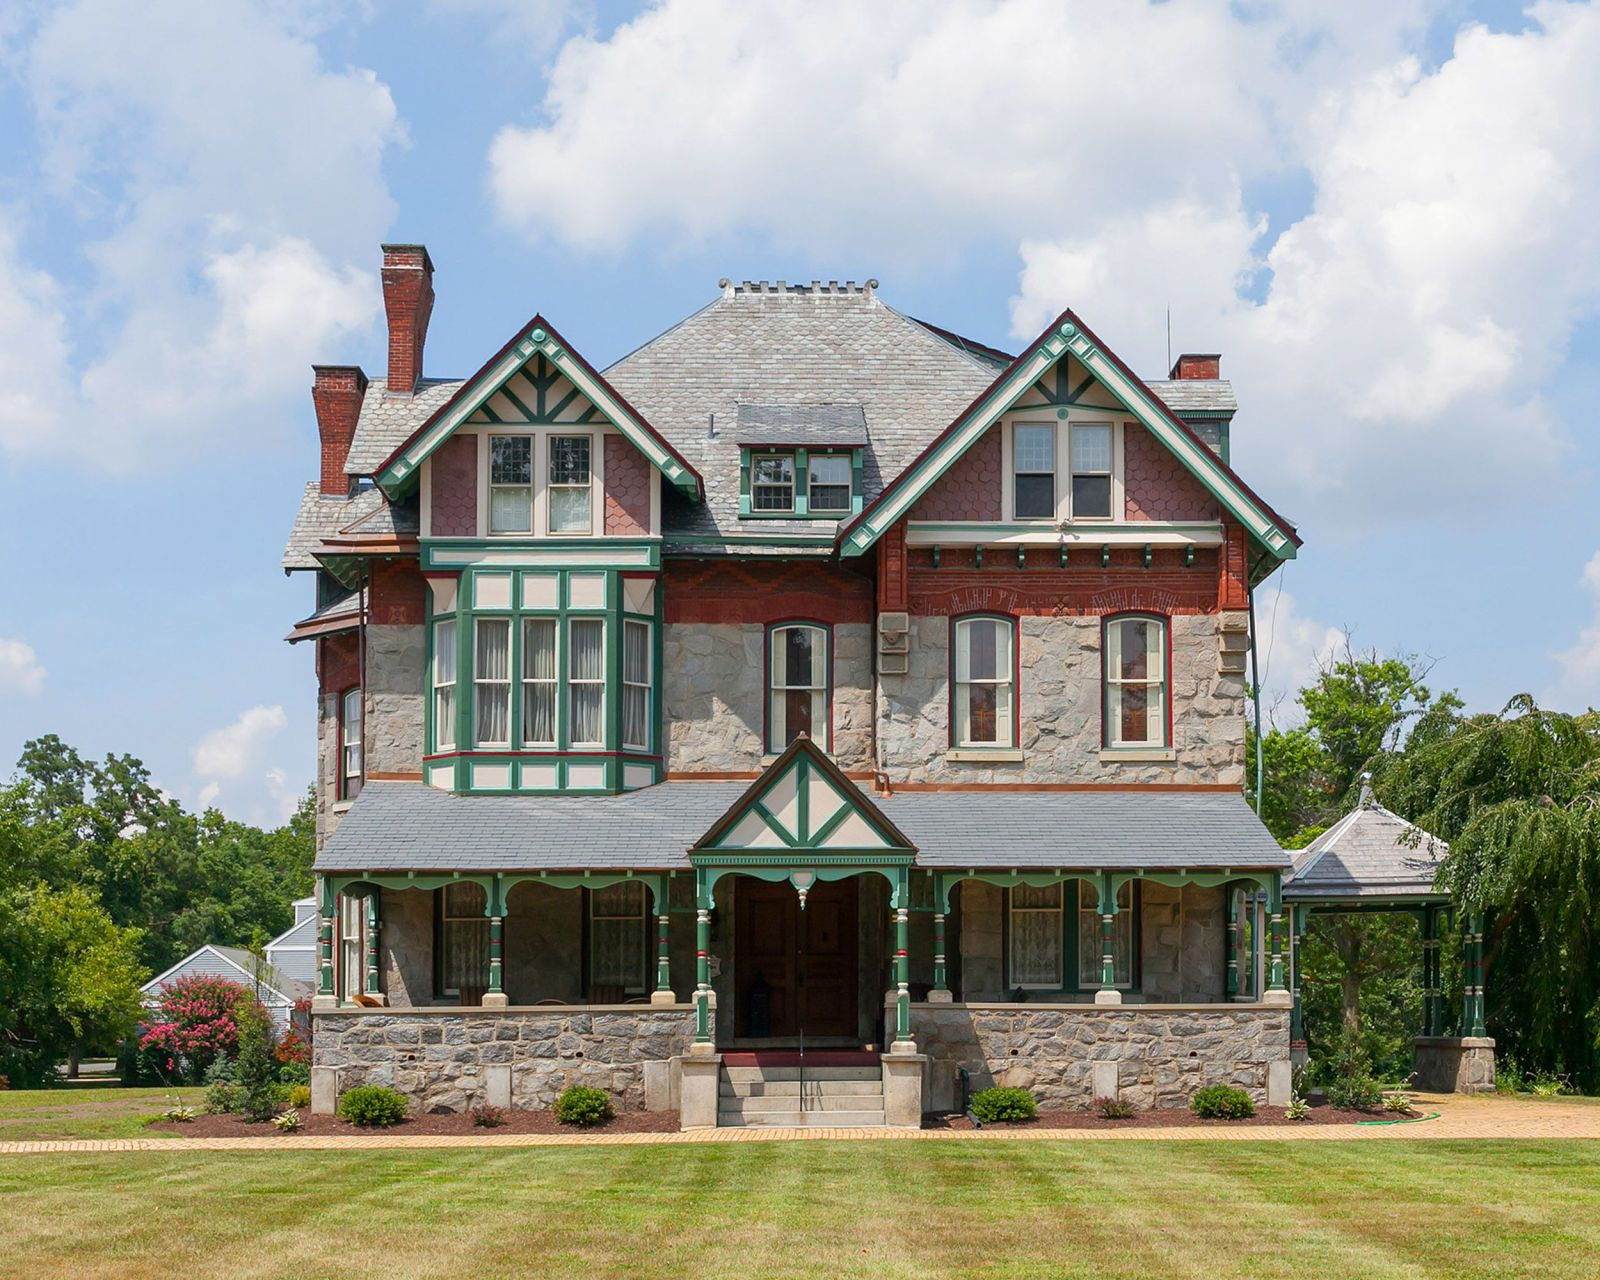 Victorian homes for sale in mississippi - More Is More When It Comes To Victorian Homes And The Wenonah New Jersey